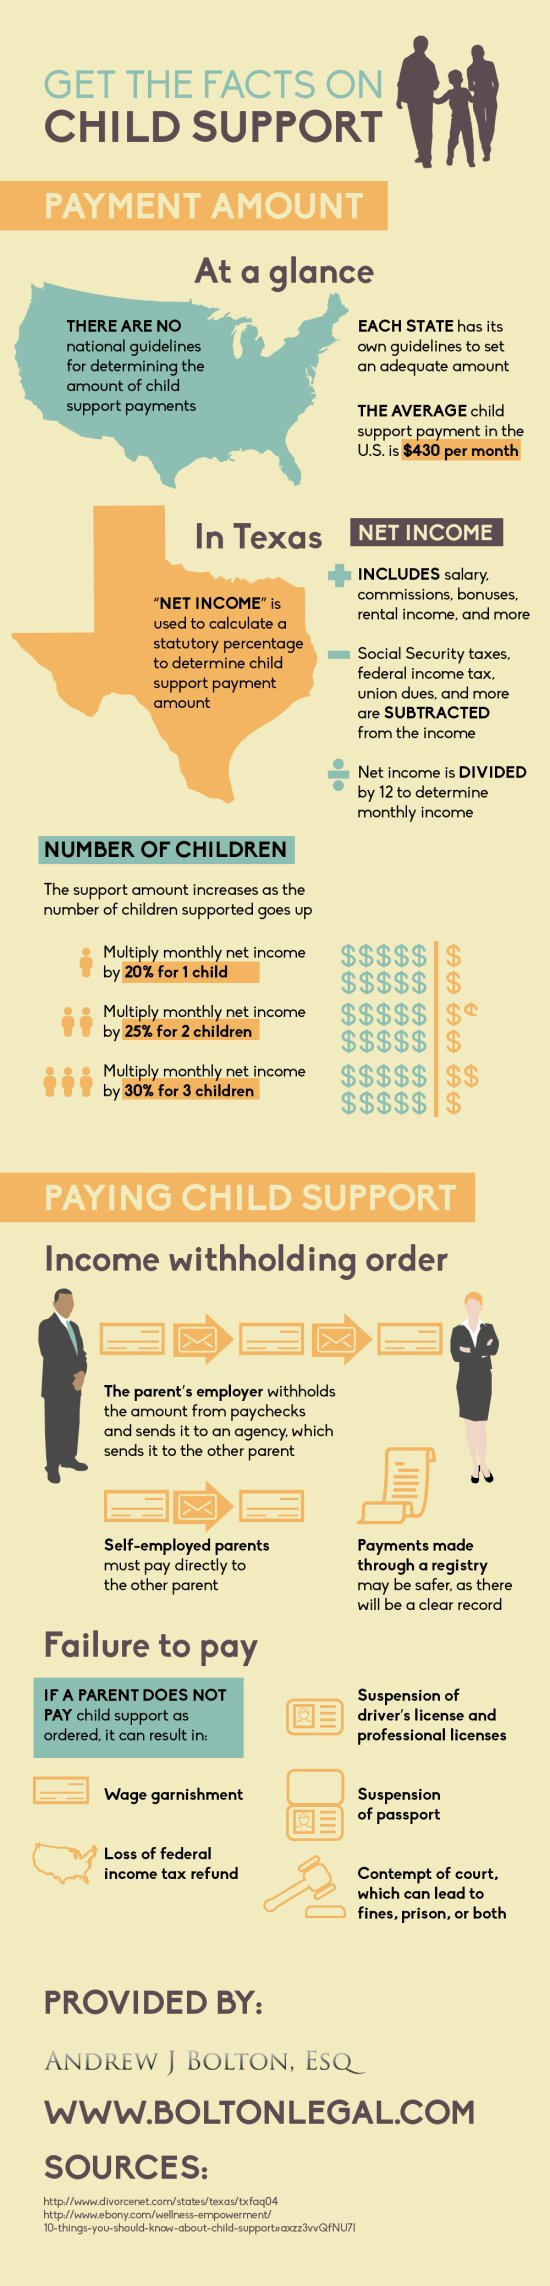 Child Support